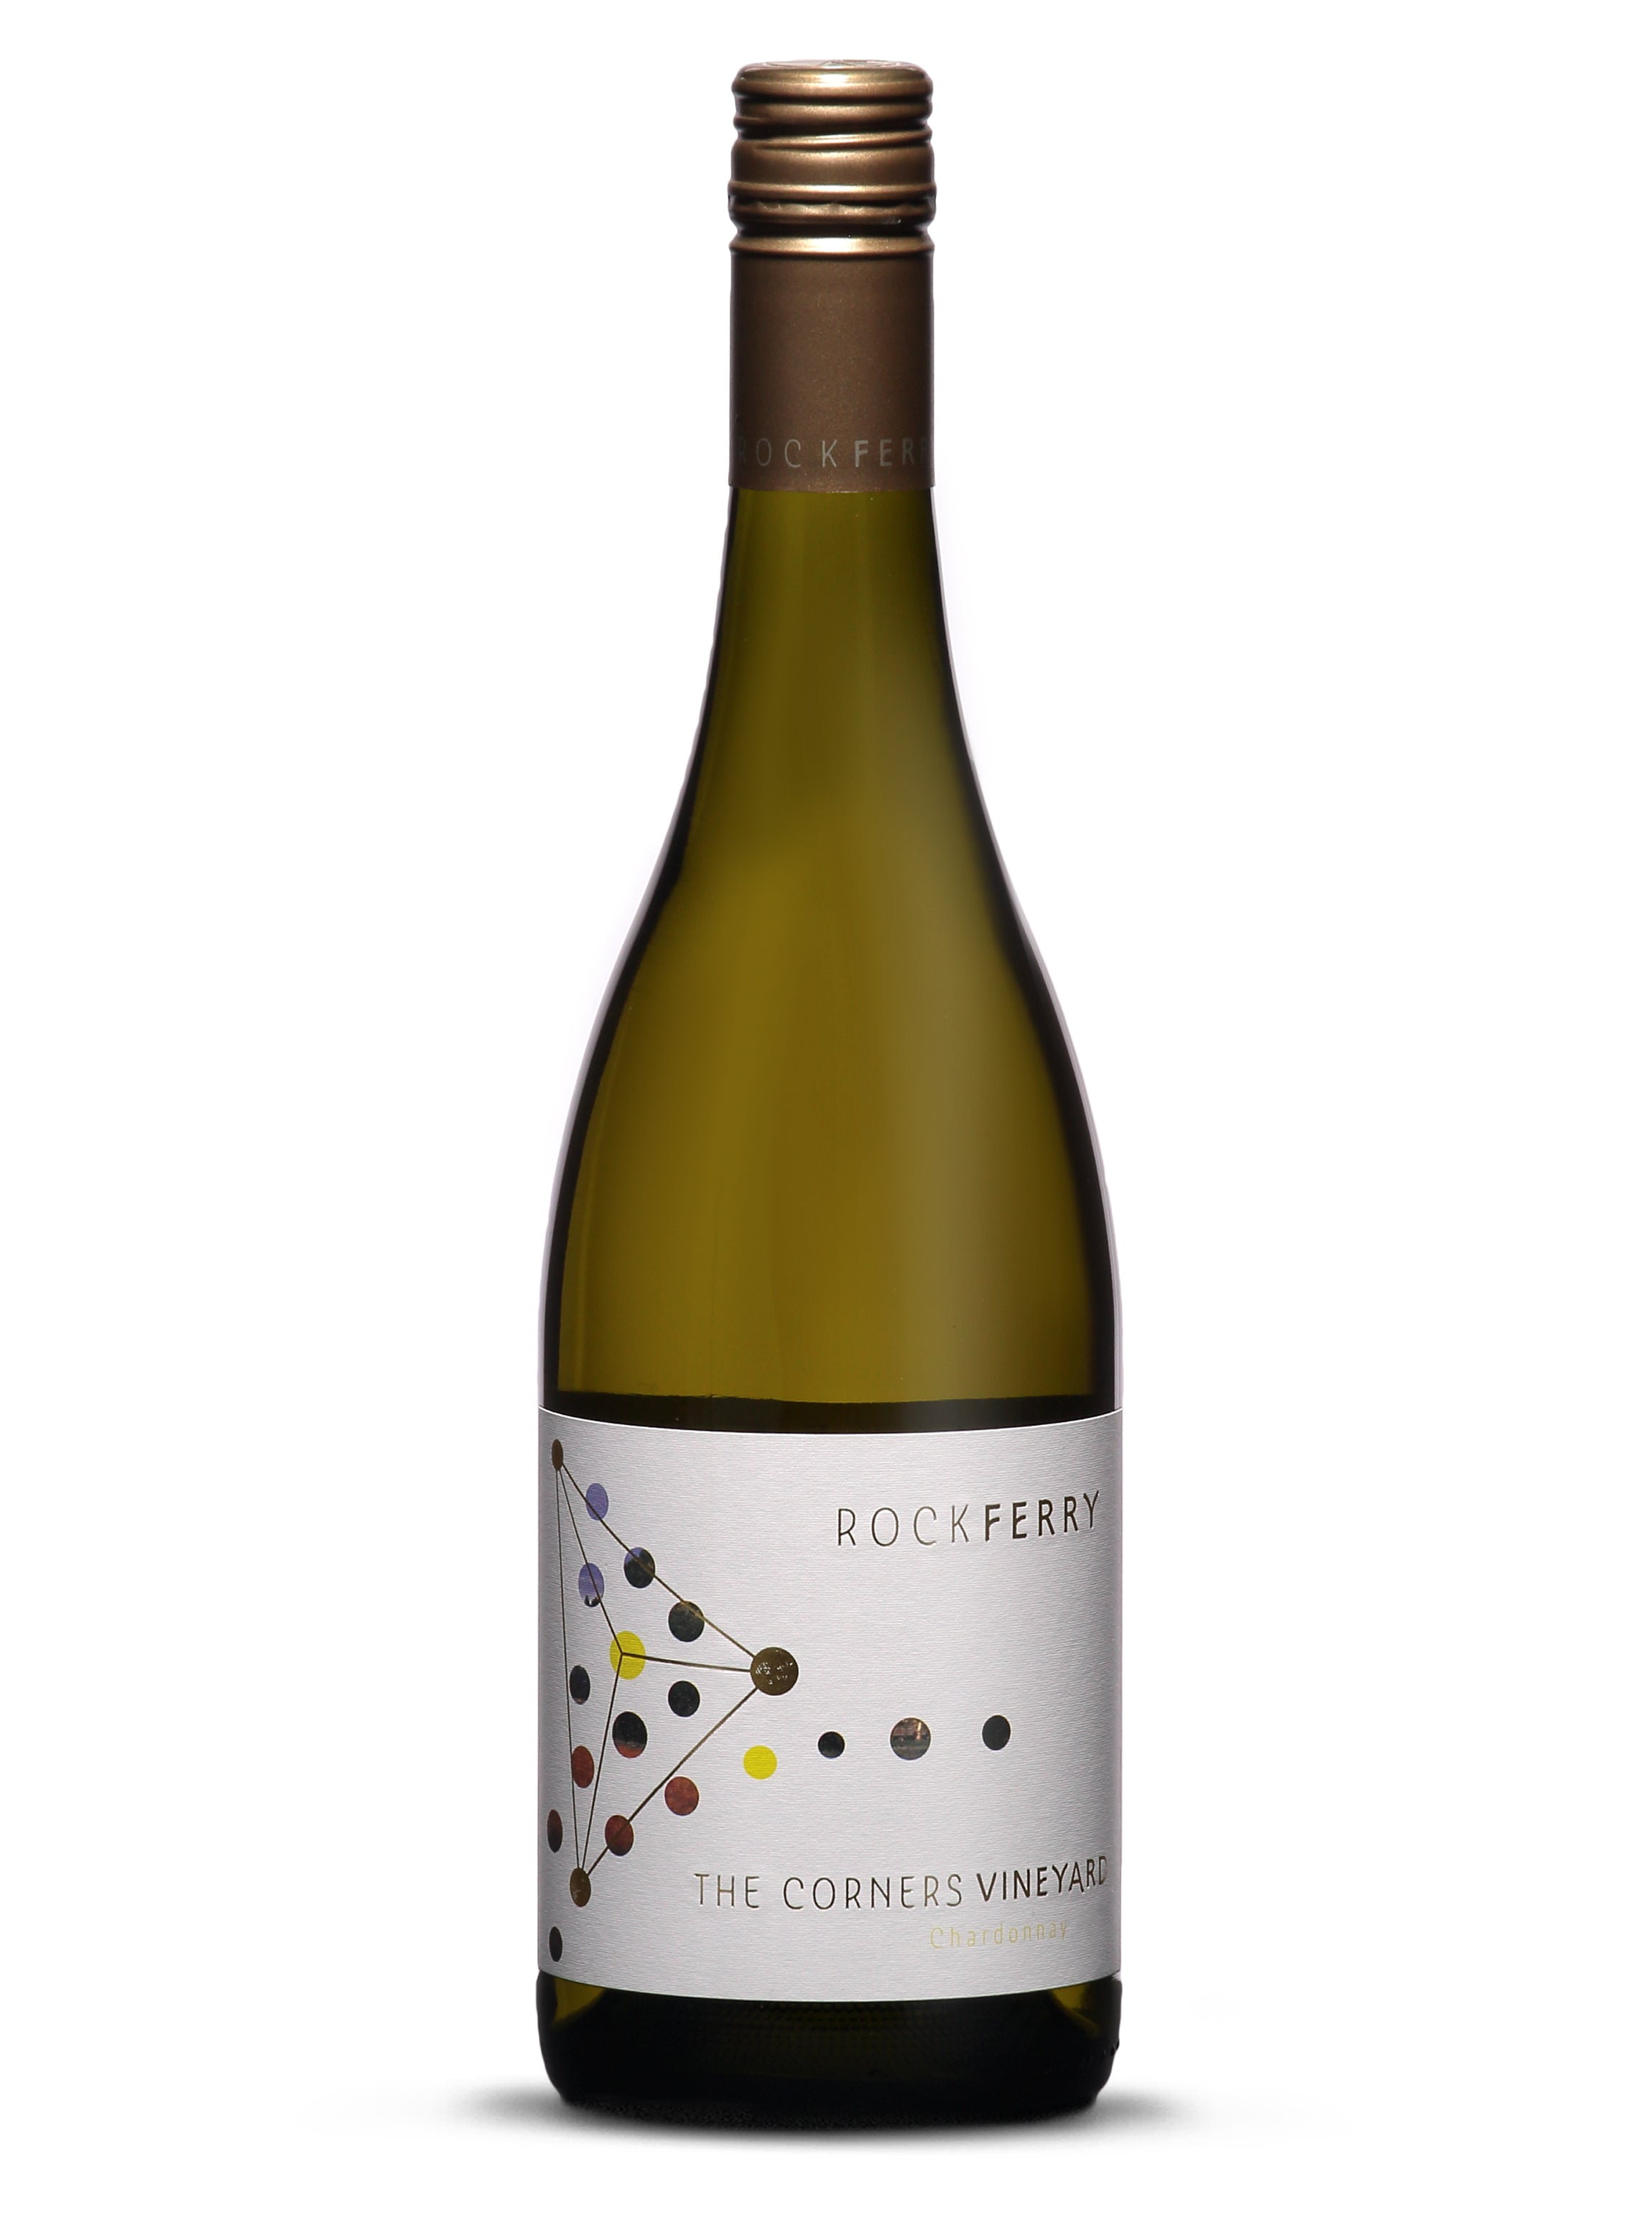 Rock Ferry The Corners Vineyard Chardonnay 2018